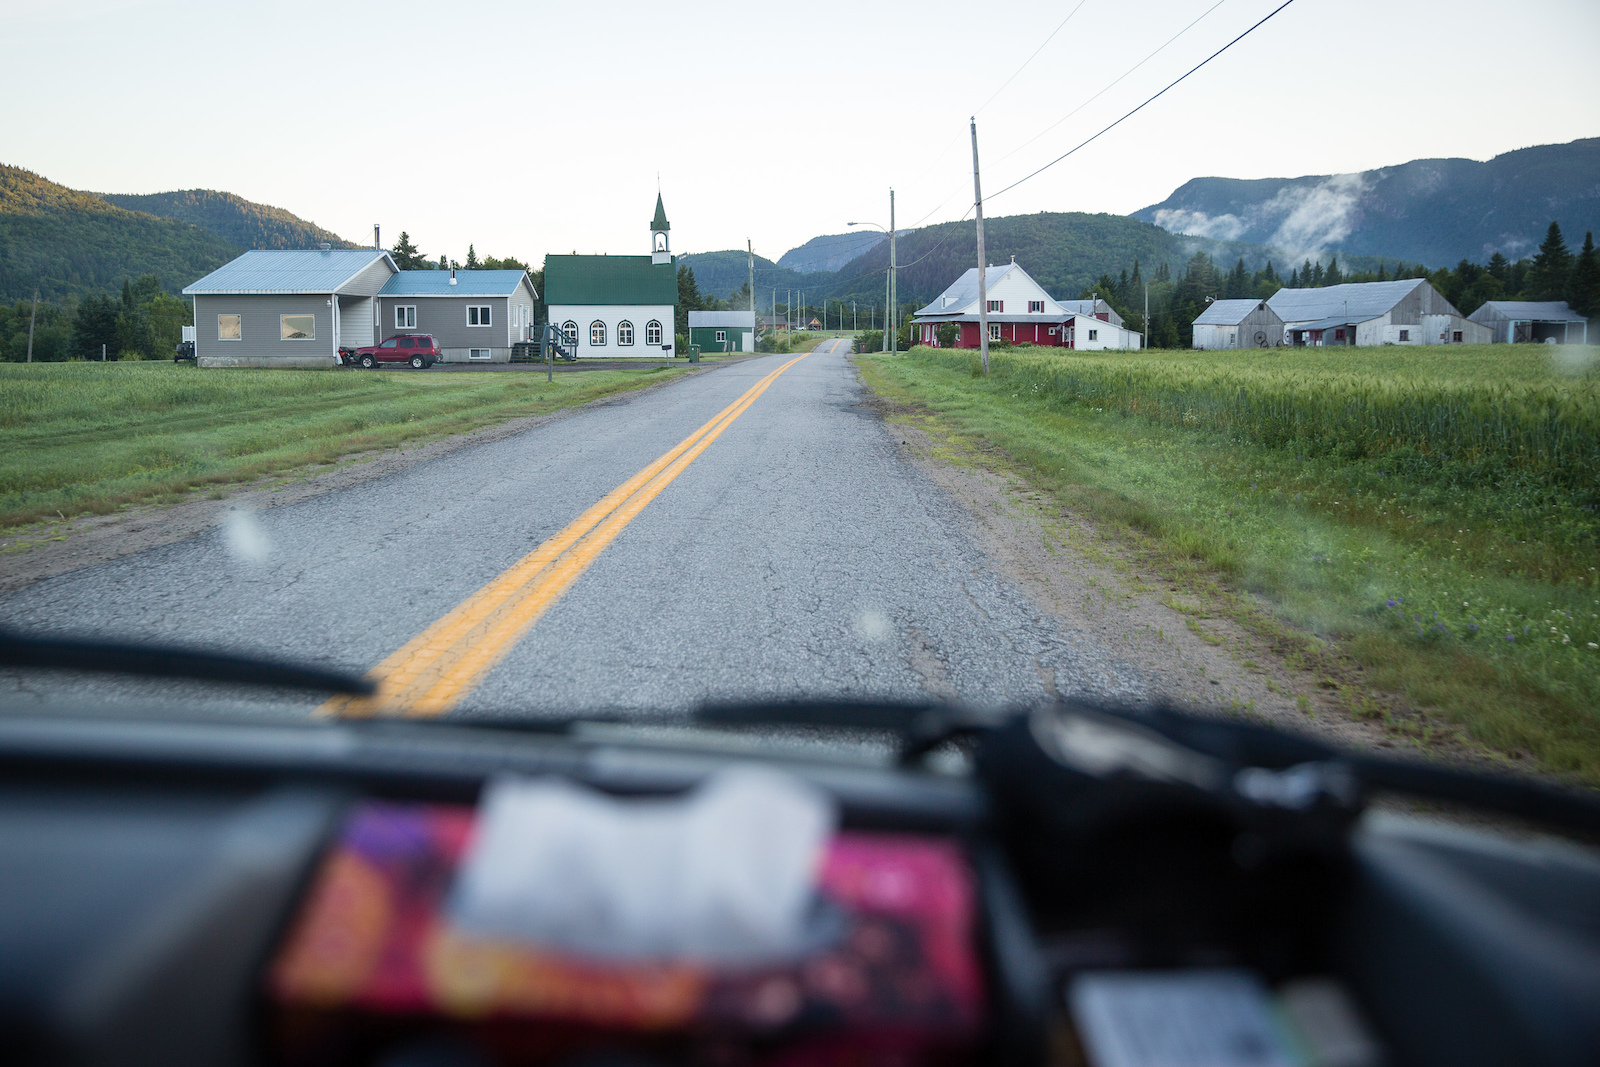 The early am drive through the tiny Shanahan Village on the way to Vall e Bras-du-Nord. PHOTO Ben Gavelda